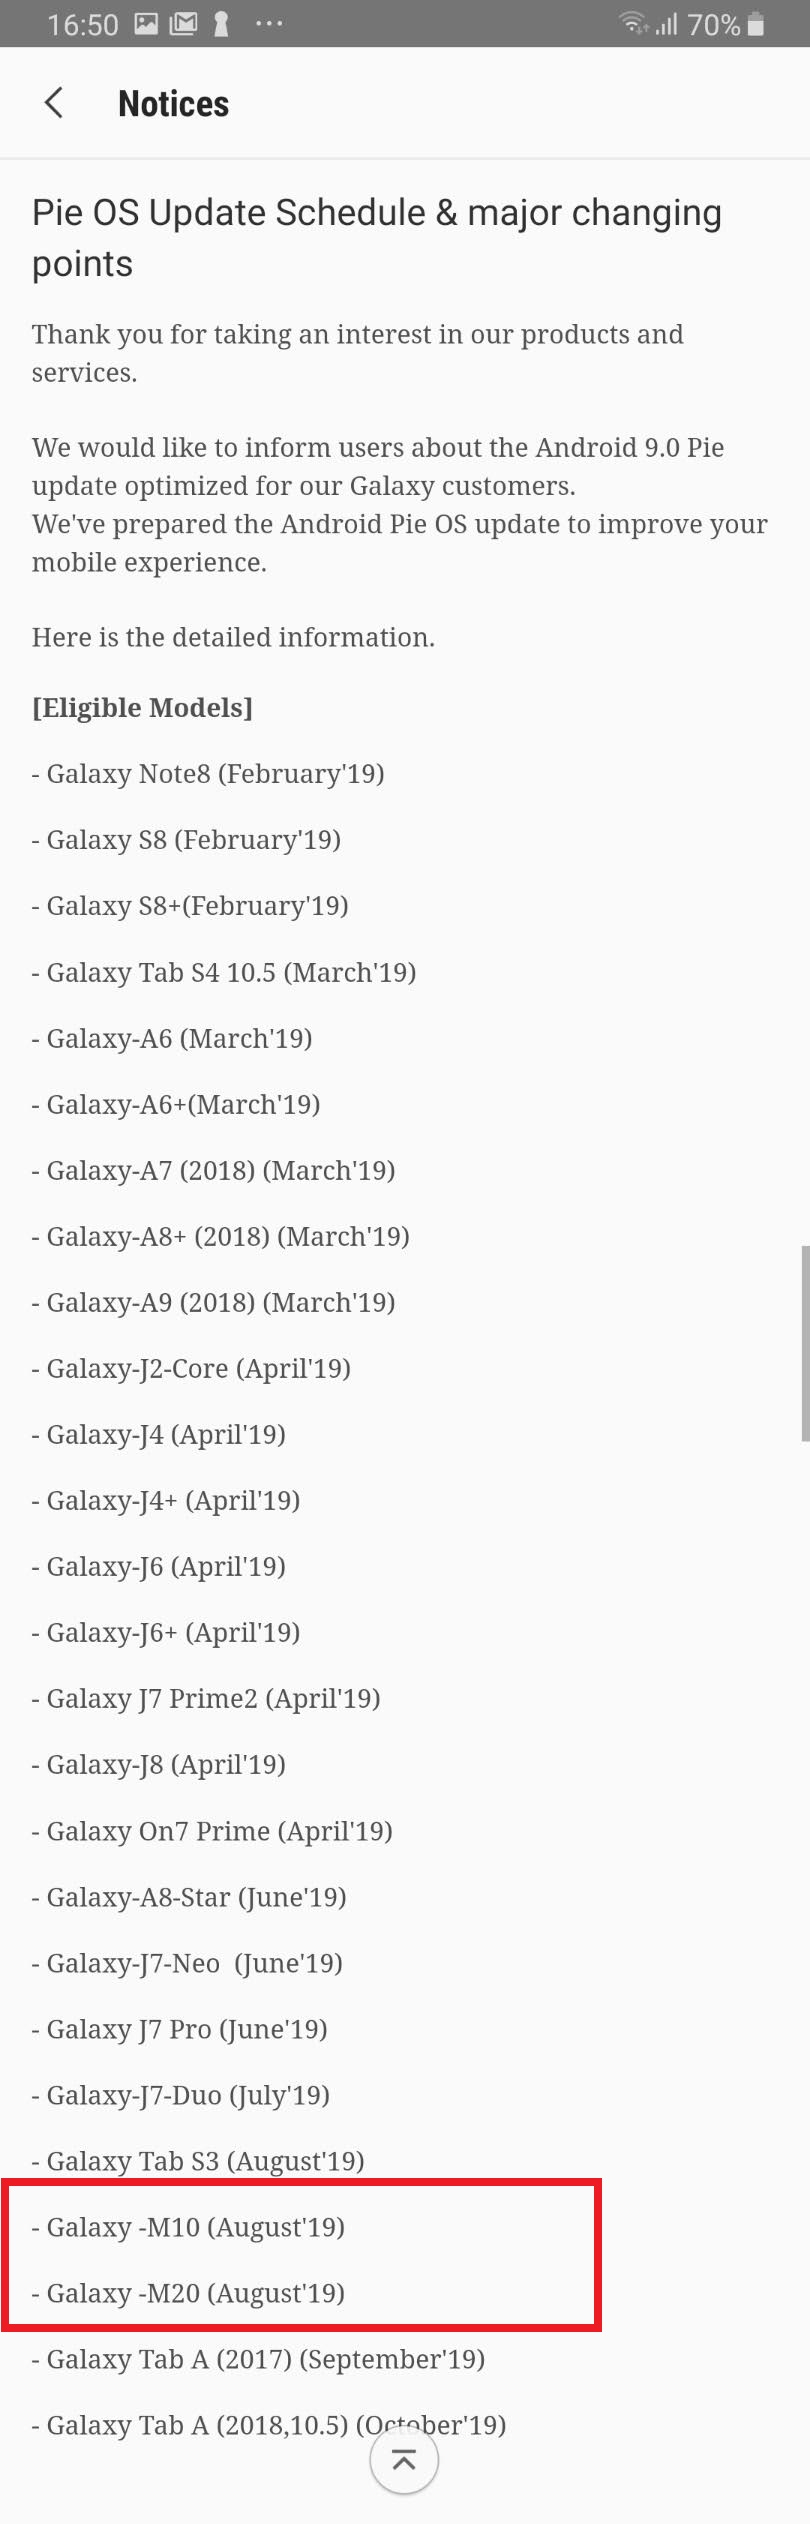 galaxy m10 m20 pie schedule